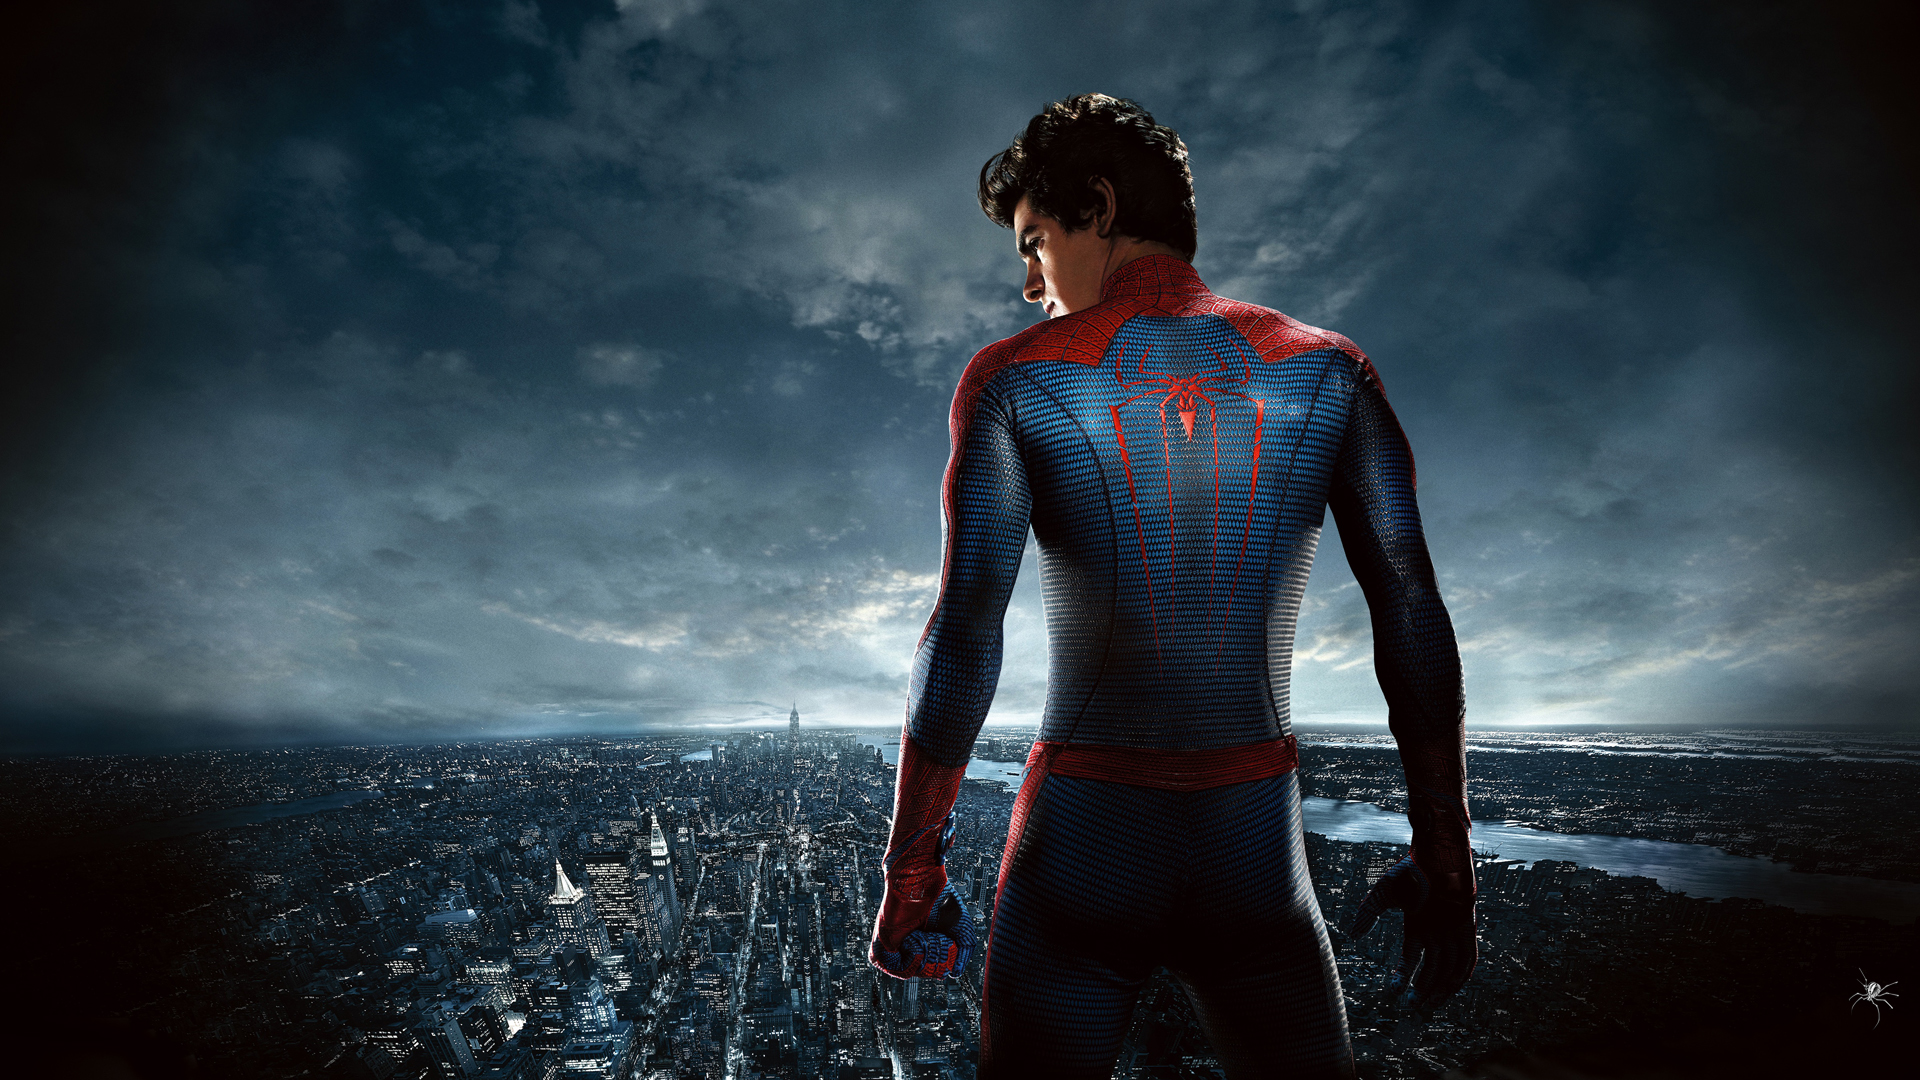 Spider Man   Wallpaper High Definition High Quality Widescreen 1920x1080